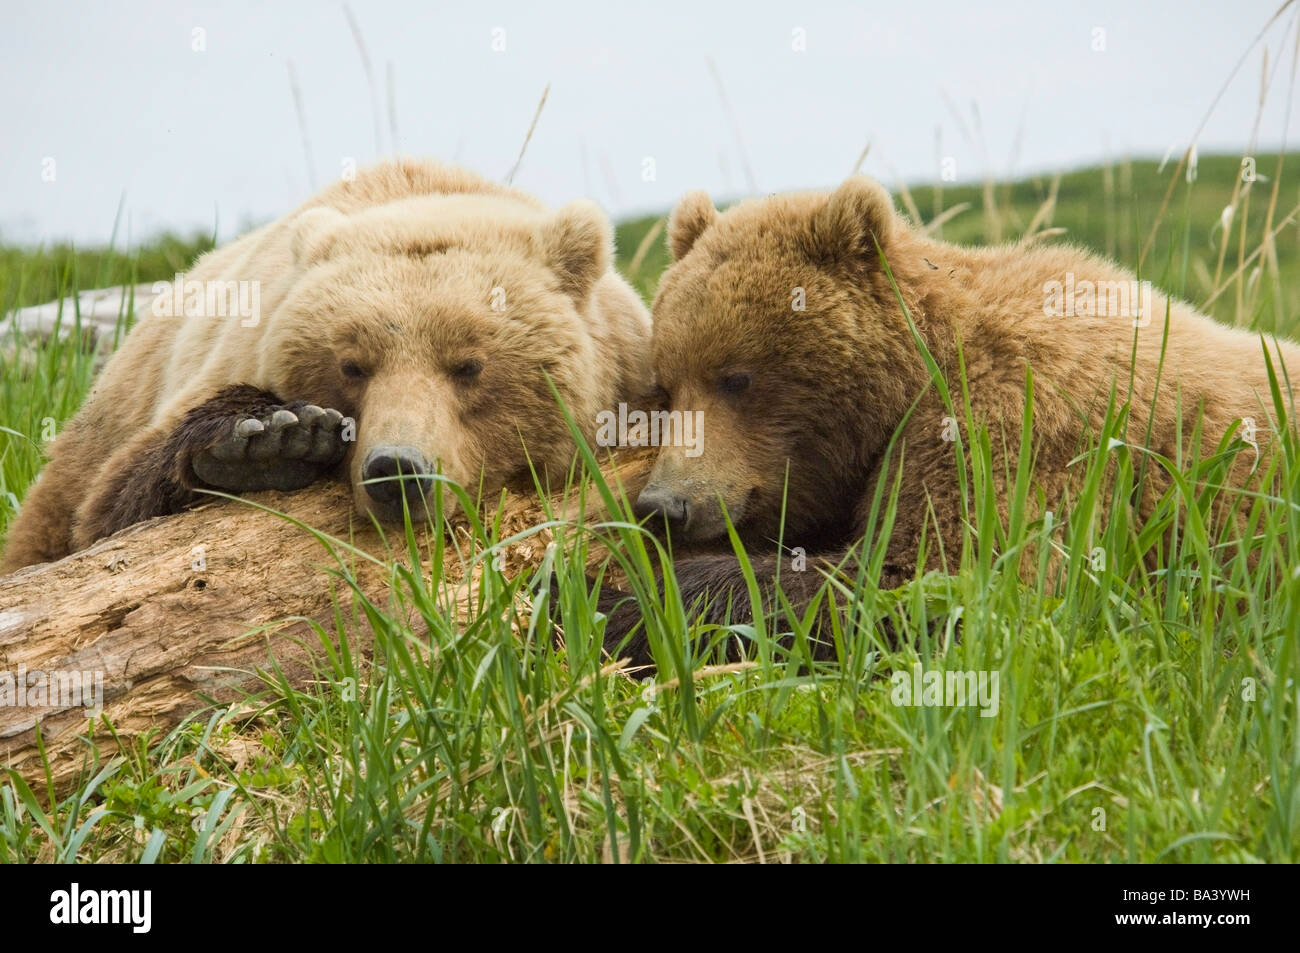 Brown Bear sow and her cub take a nap on some driftwood at McNeil River during Summer in Southwest Alaska. - Stock Image